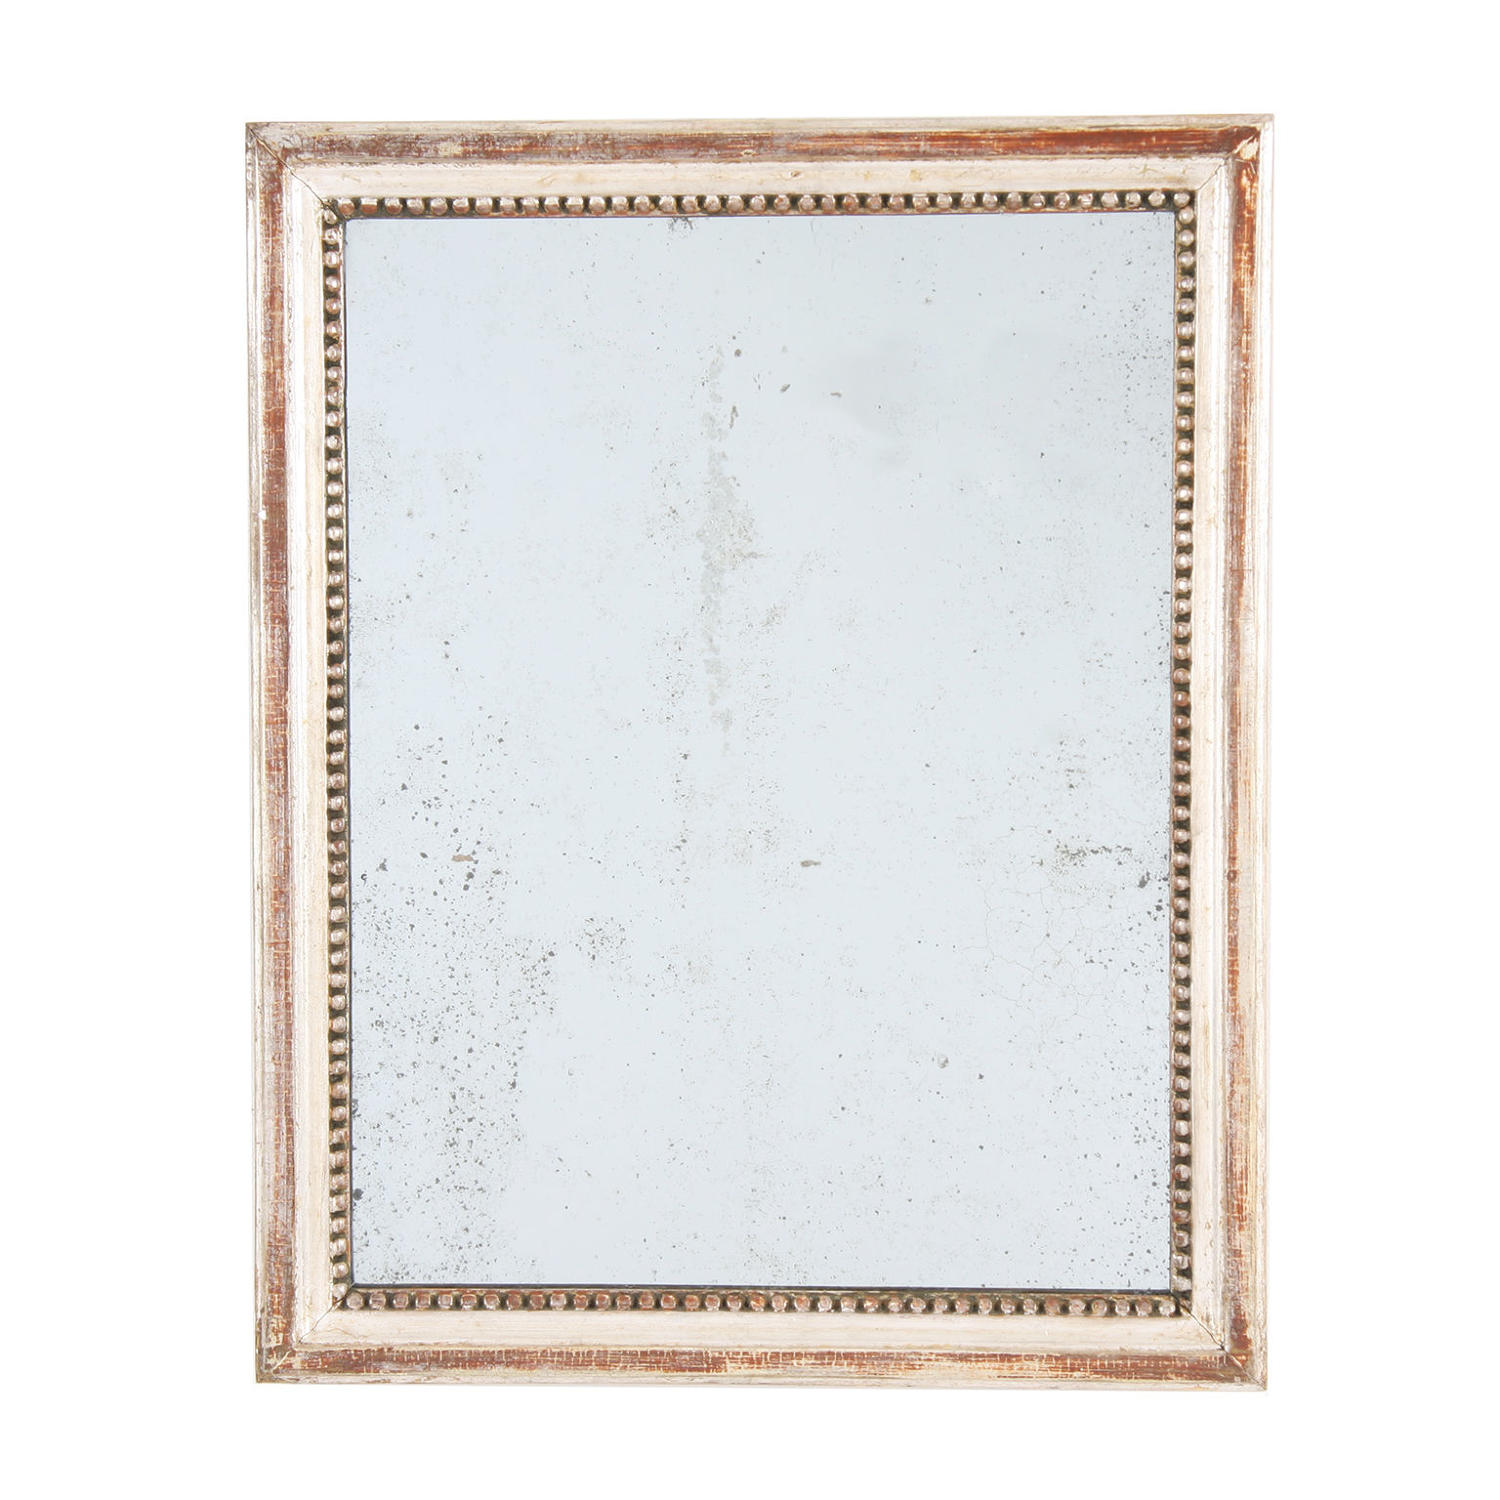 Faded Silver Leaf Mirror with Beaded Frame